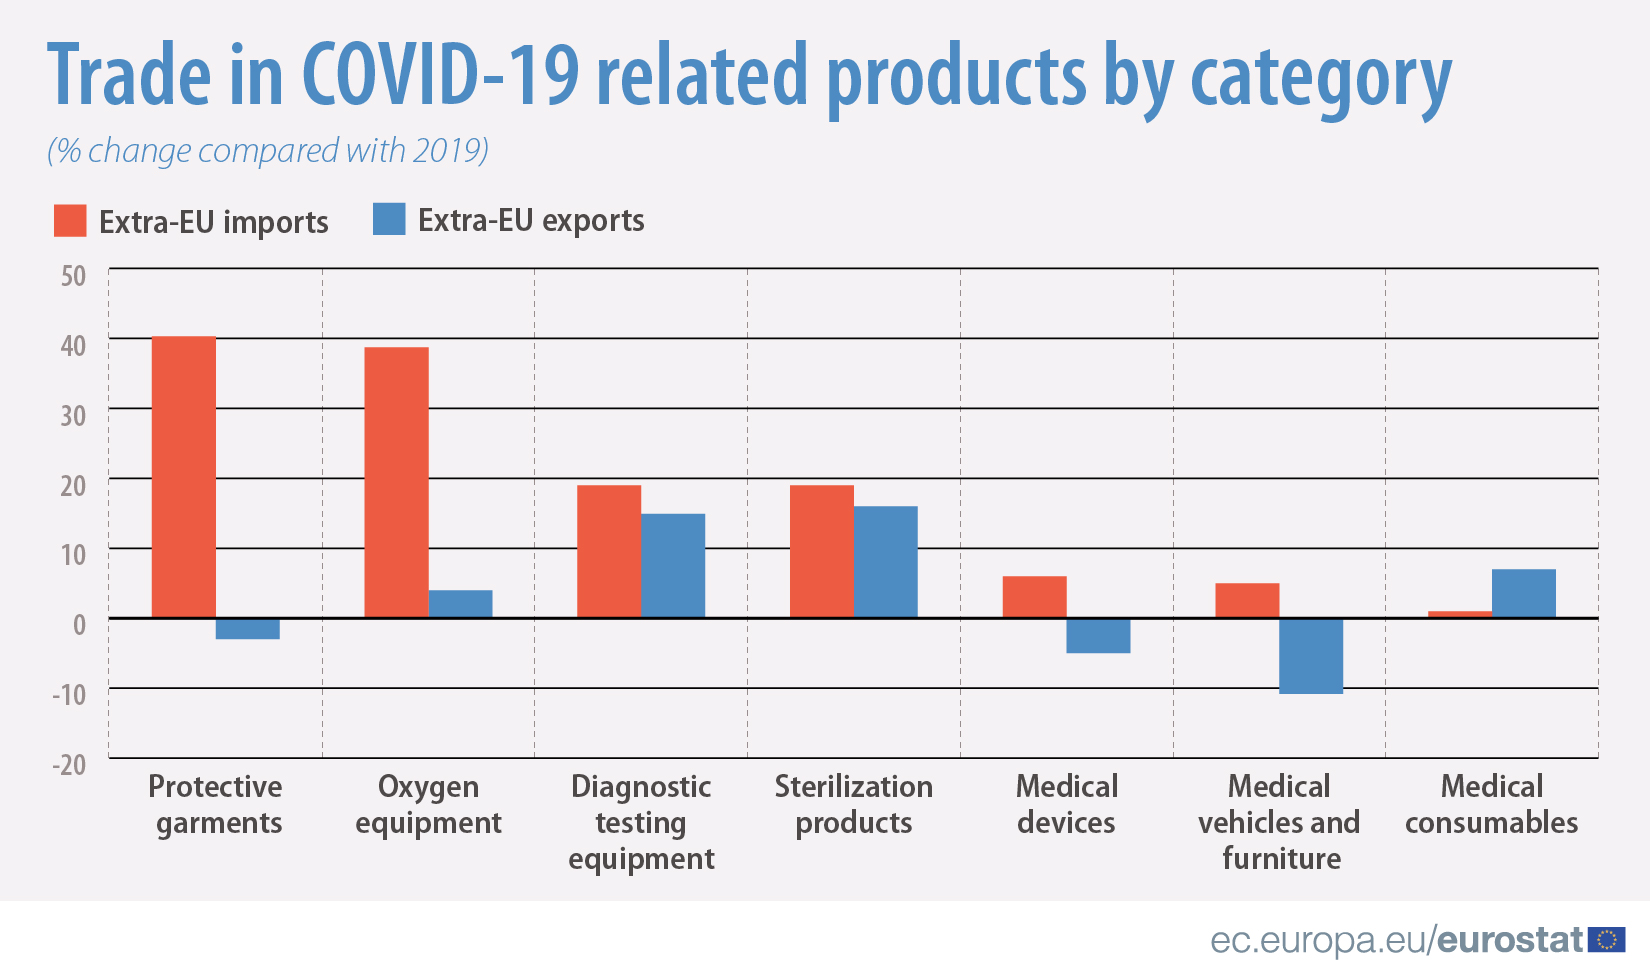 Trade in COVID-19 related products by category (% change compared with 2019)